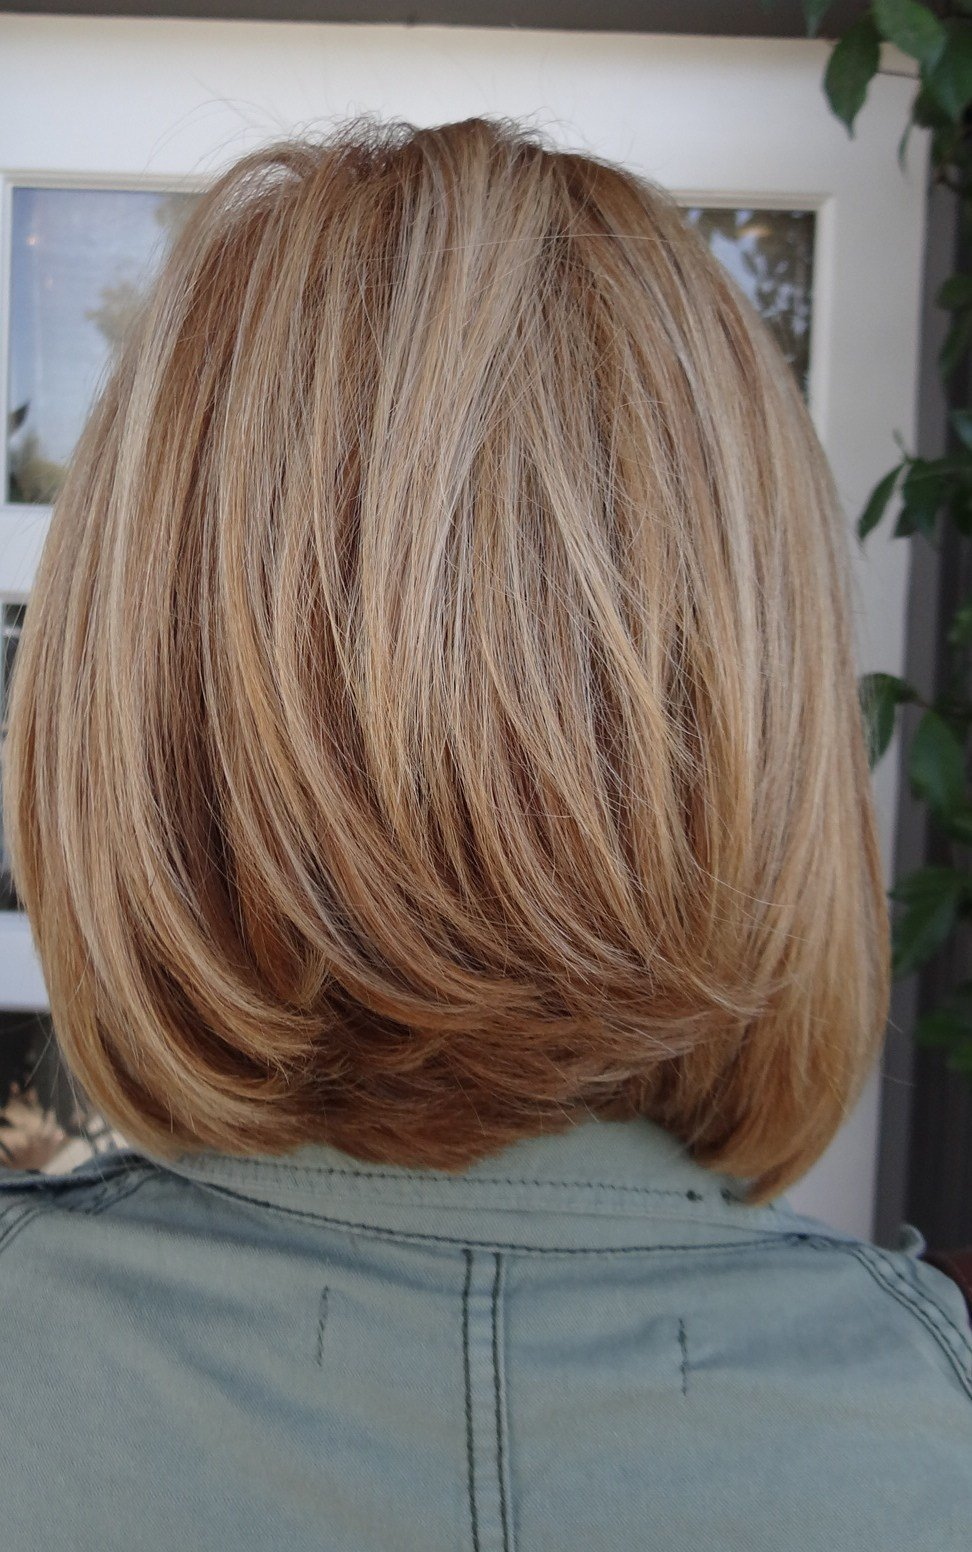 The Best Before And After Tone Brassy Hair Neil George Pictures